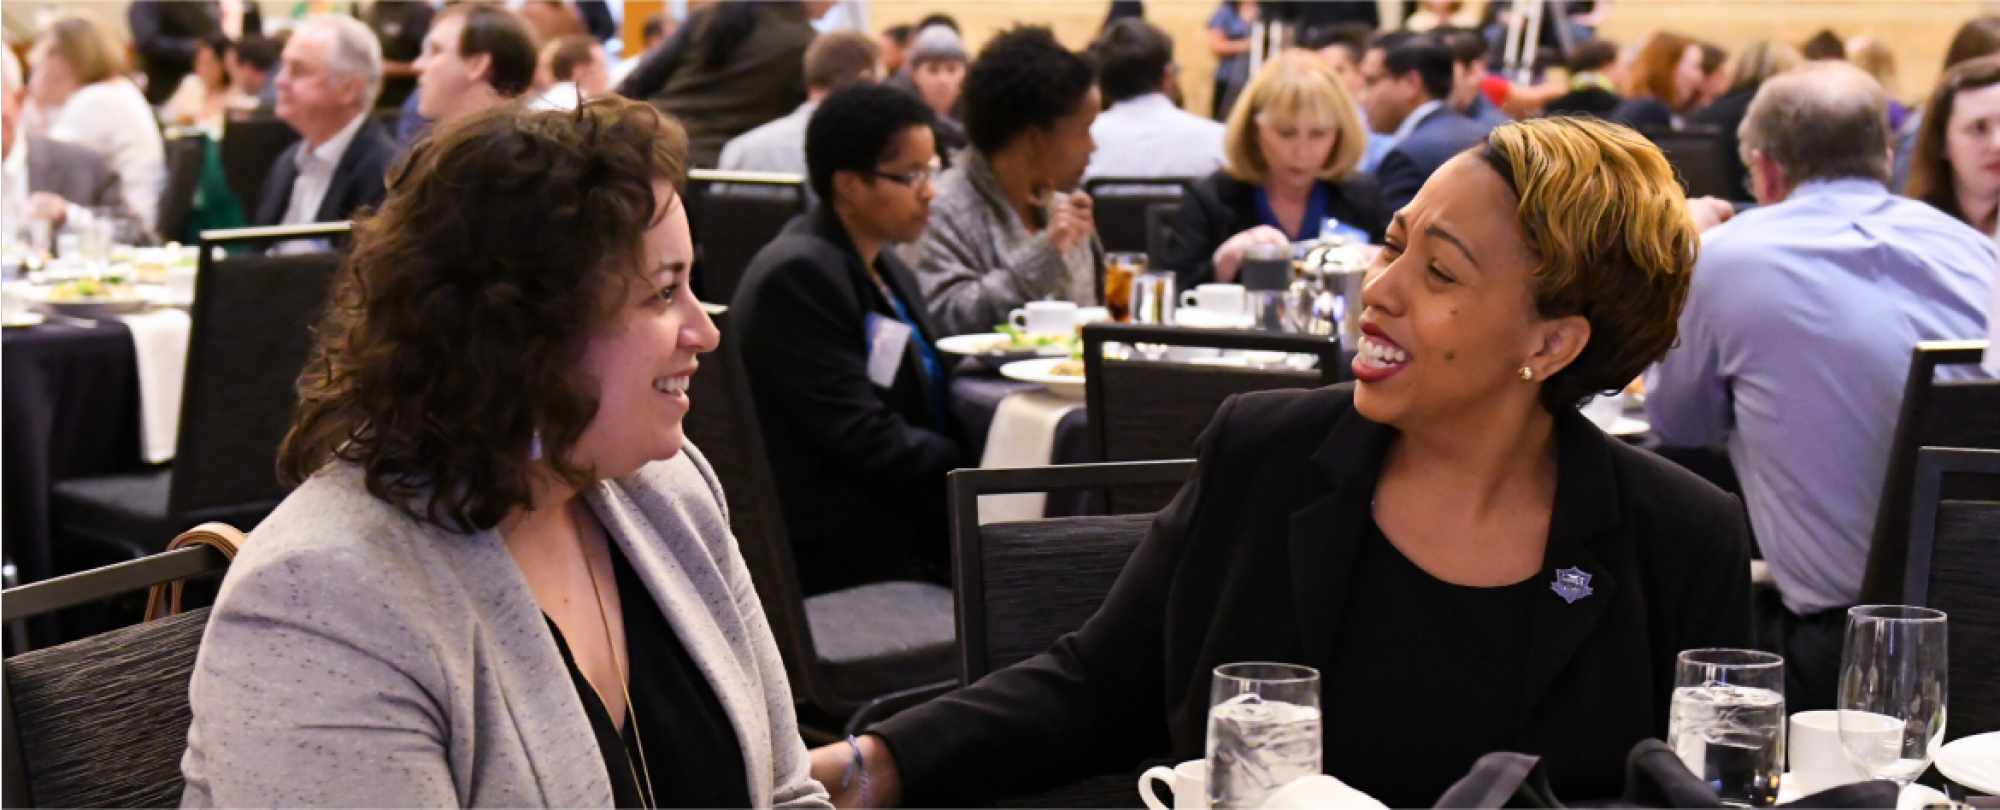 Two people having am enjoyable conversation during the 2019 Denver Housing Forum lunch